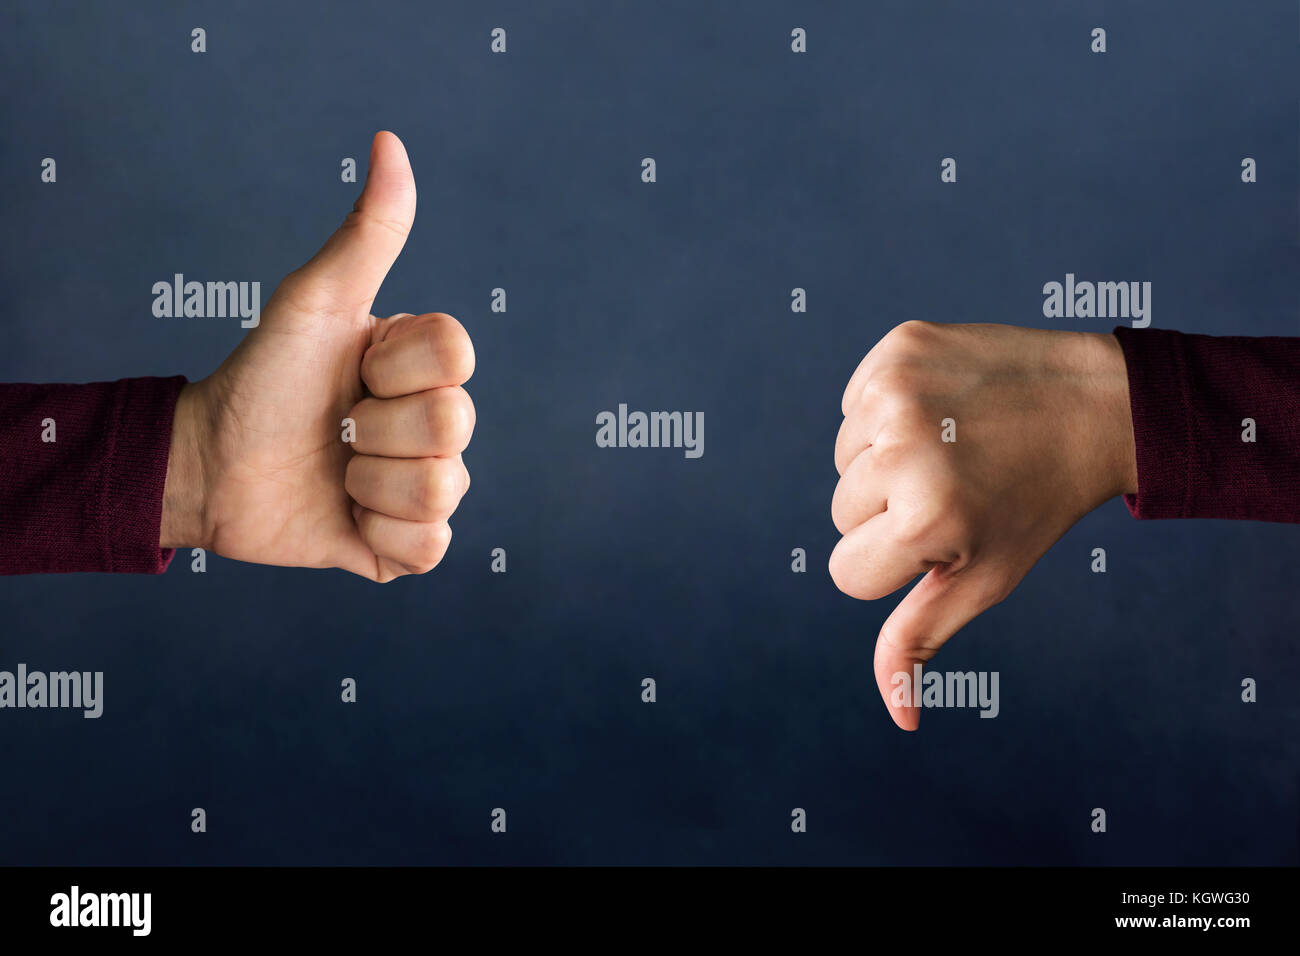 bad rating stock photos  u0026 bad rating stock images